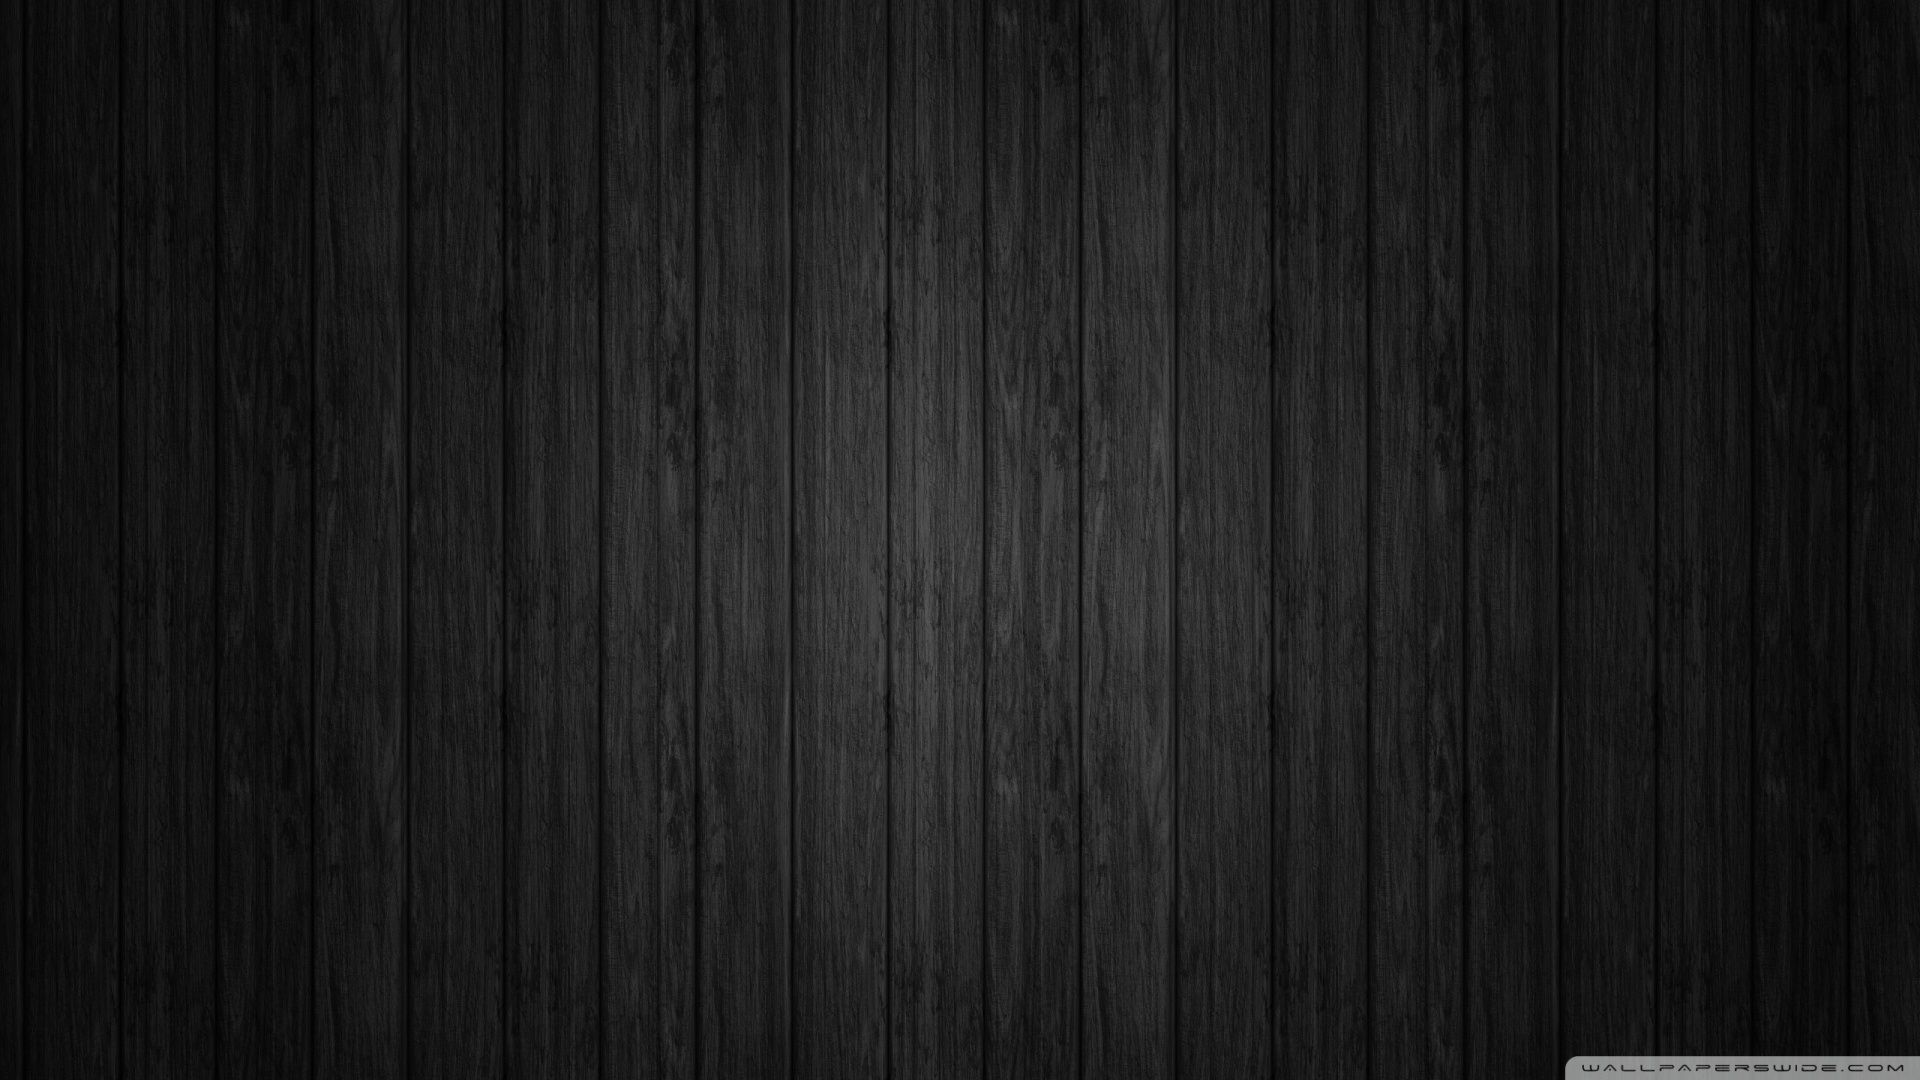 10 Top Black Background Hd Wallpapers Full Hd 1920 1080 For Pc Desktop Black Background Wallpaper Black Hd Wallpaper Black Wood Texture